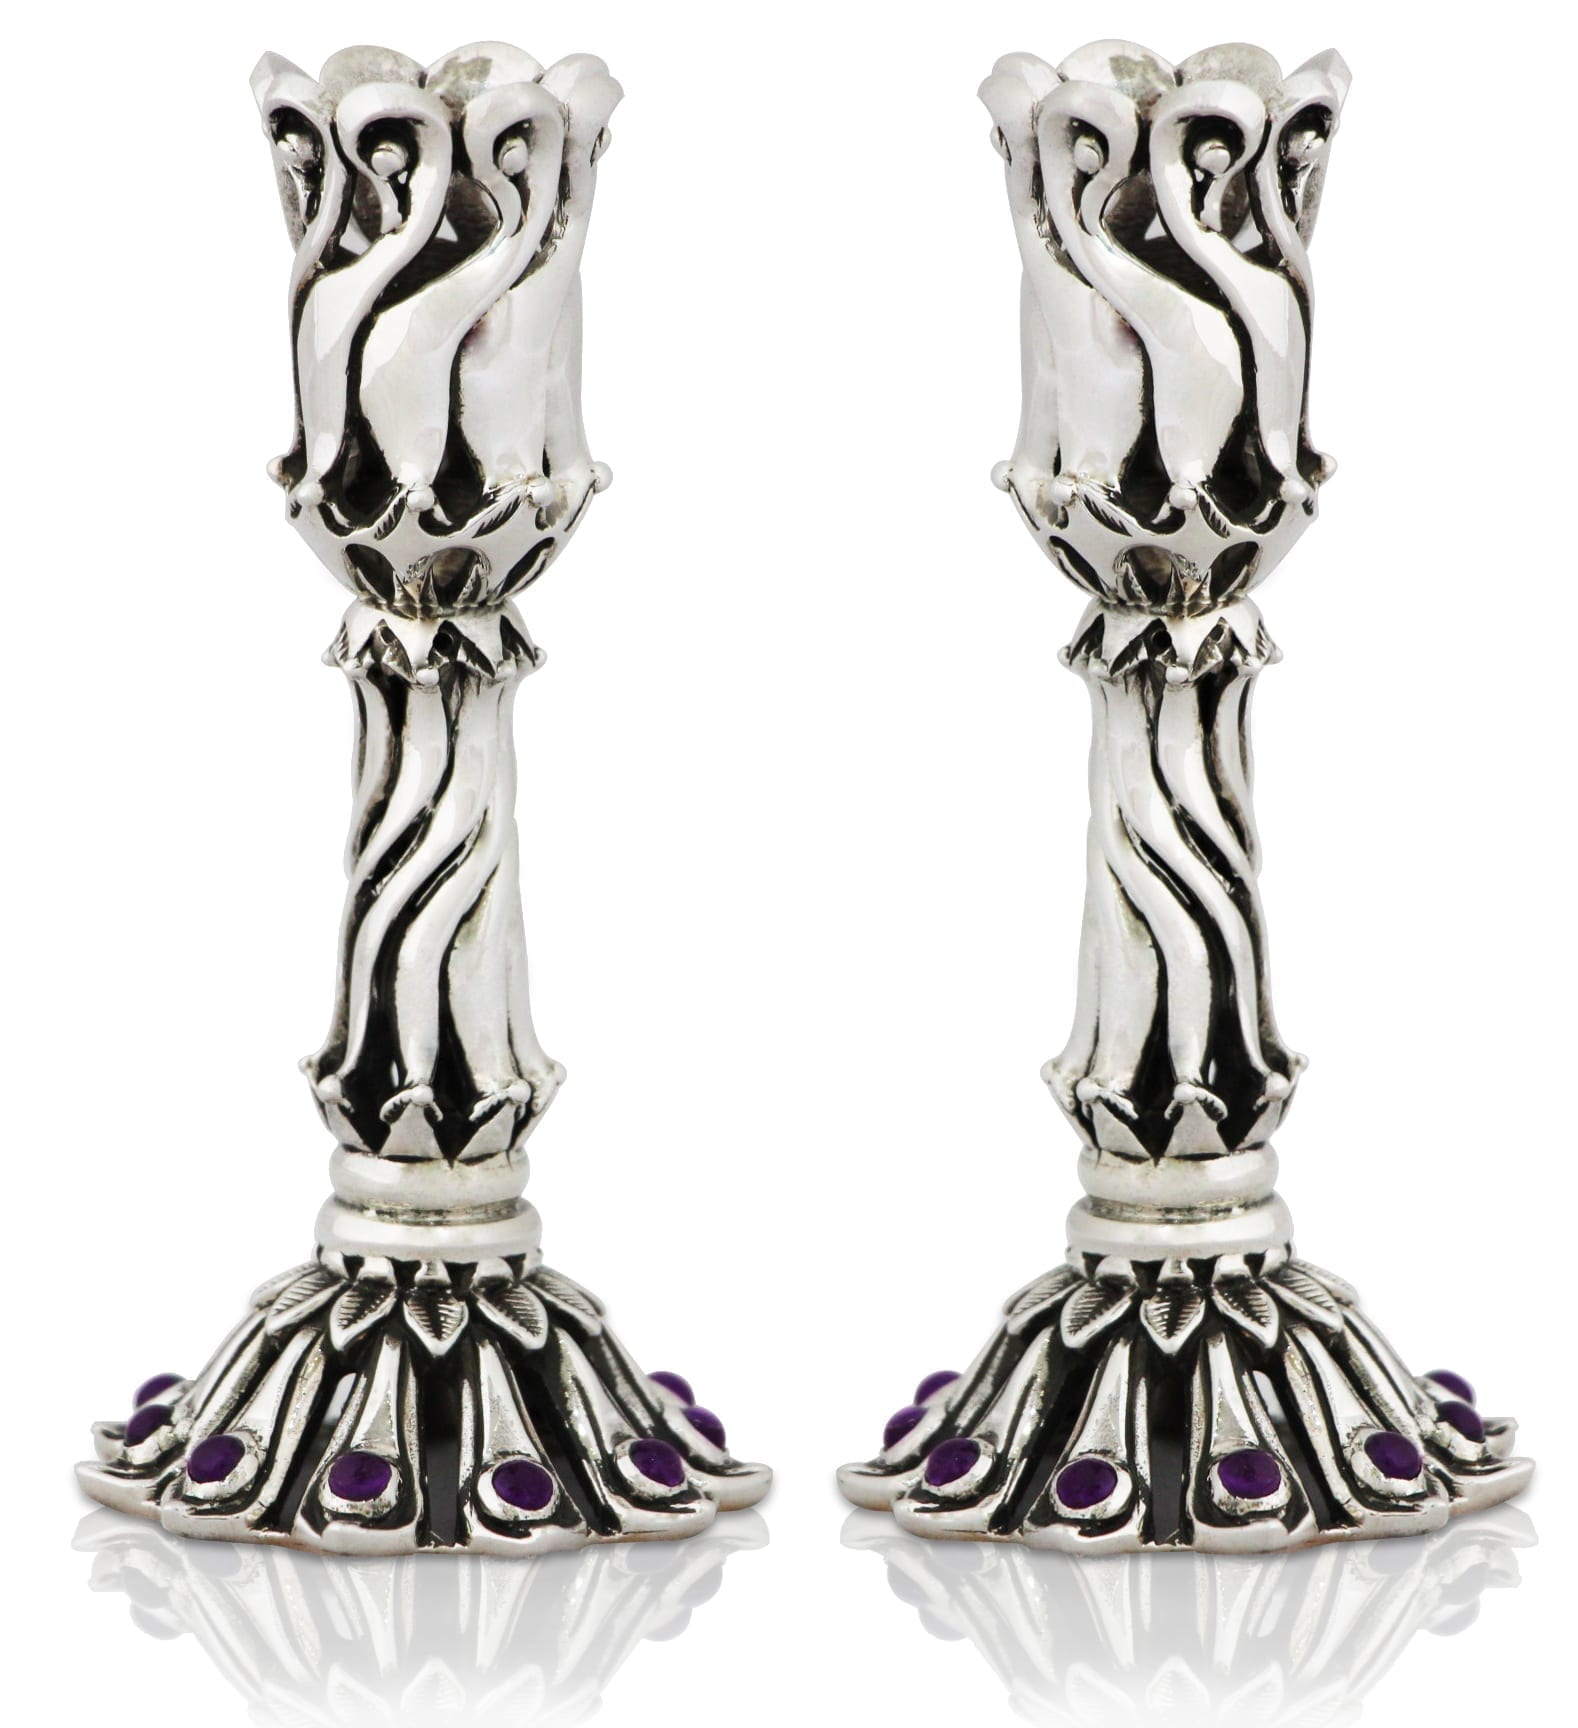 Petite sterling silver candlesticks with semi-precious amethyst stones. Shabbat Judaica made in Israel